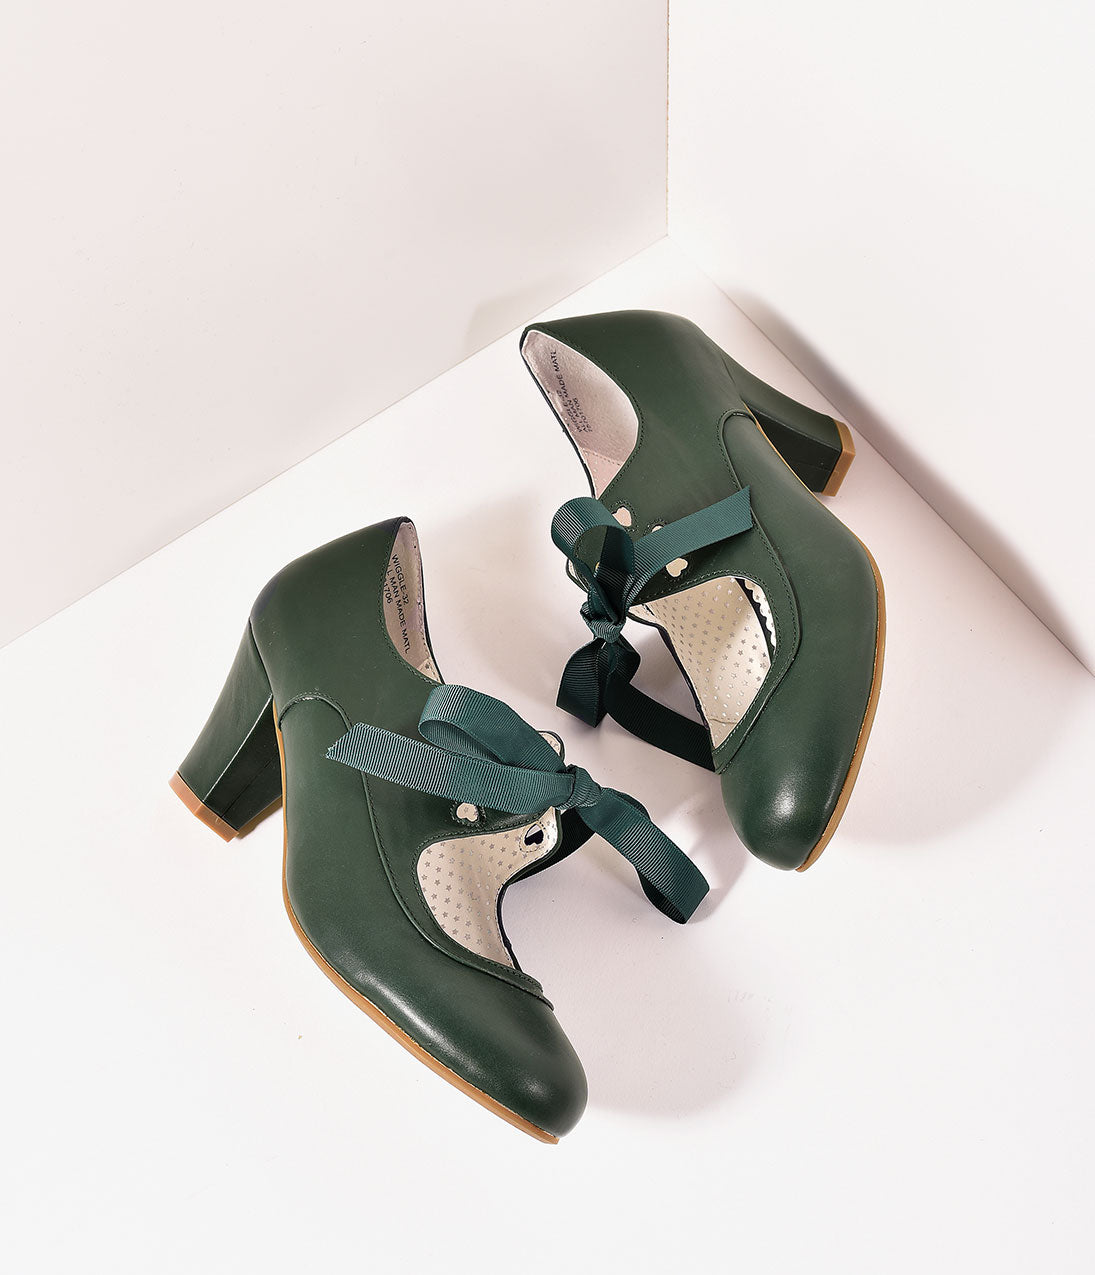 Vintage Style Shoes, Vintage Inspired Shoes Vintage Style Emerald Green Leatherette Mary Jane Bow Wiggle Heels $58.00 AT vintagedancer.com